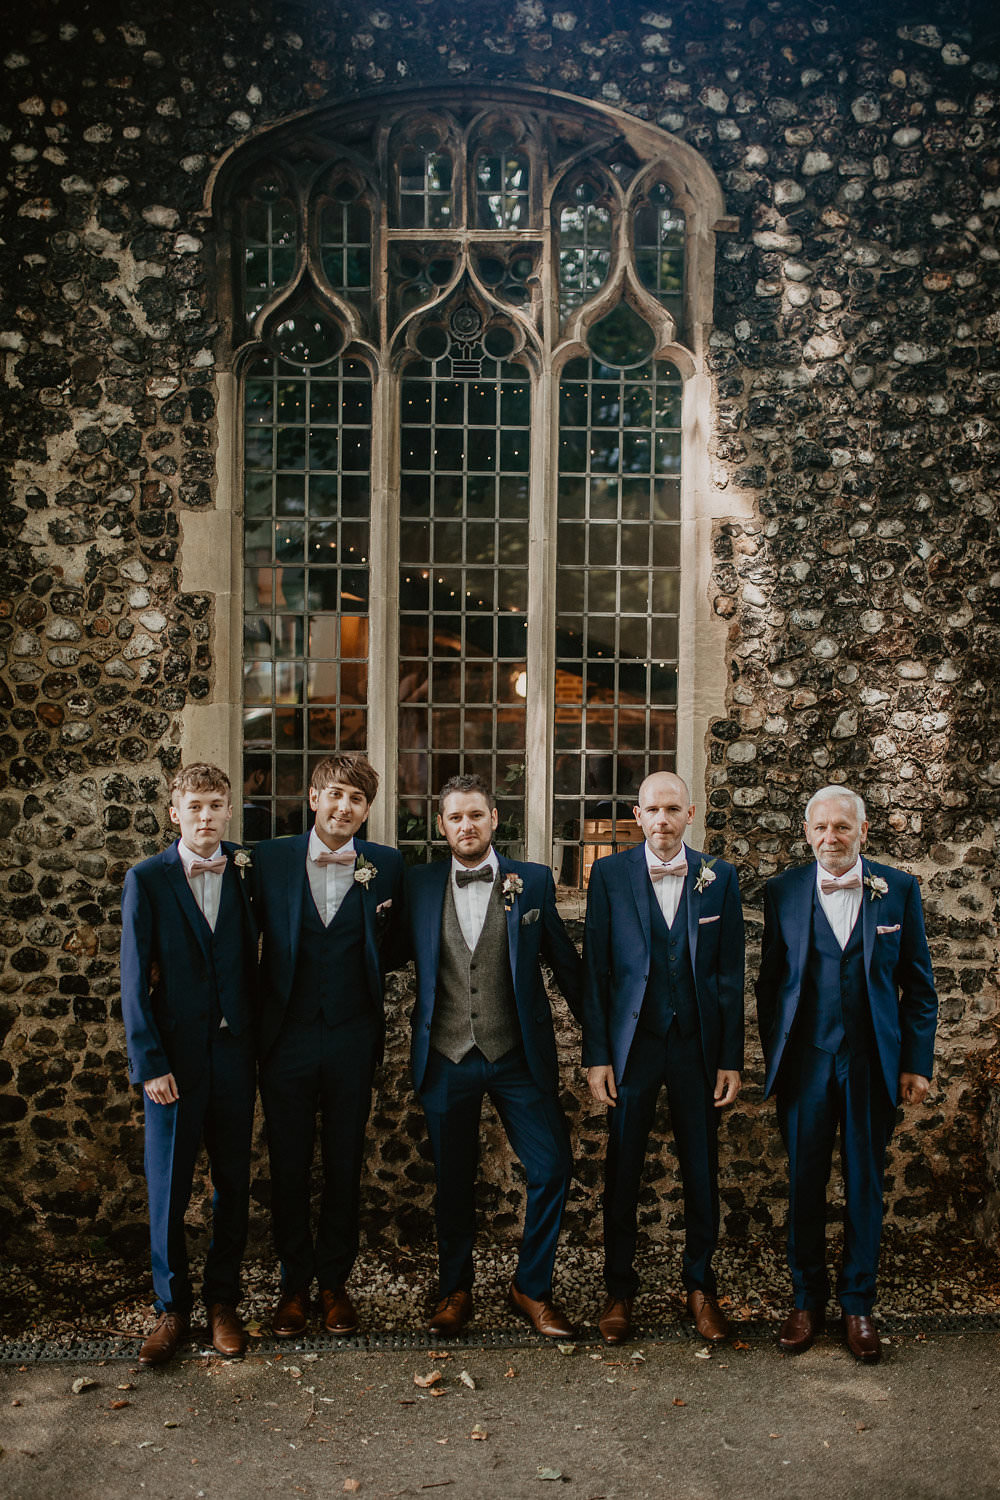 Groom Groomsmen Suits Navy Blue Grey Tweed Waistcoat Bow Tie Norwich Cathedral Wedding Camilla Andrea Photography